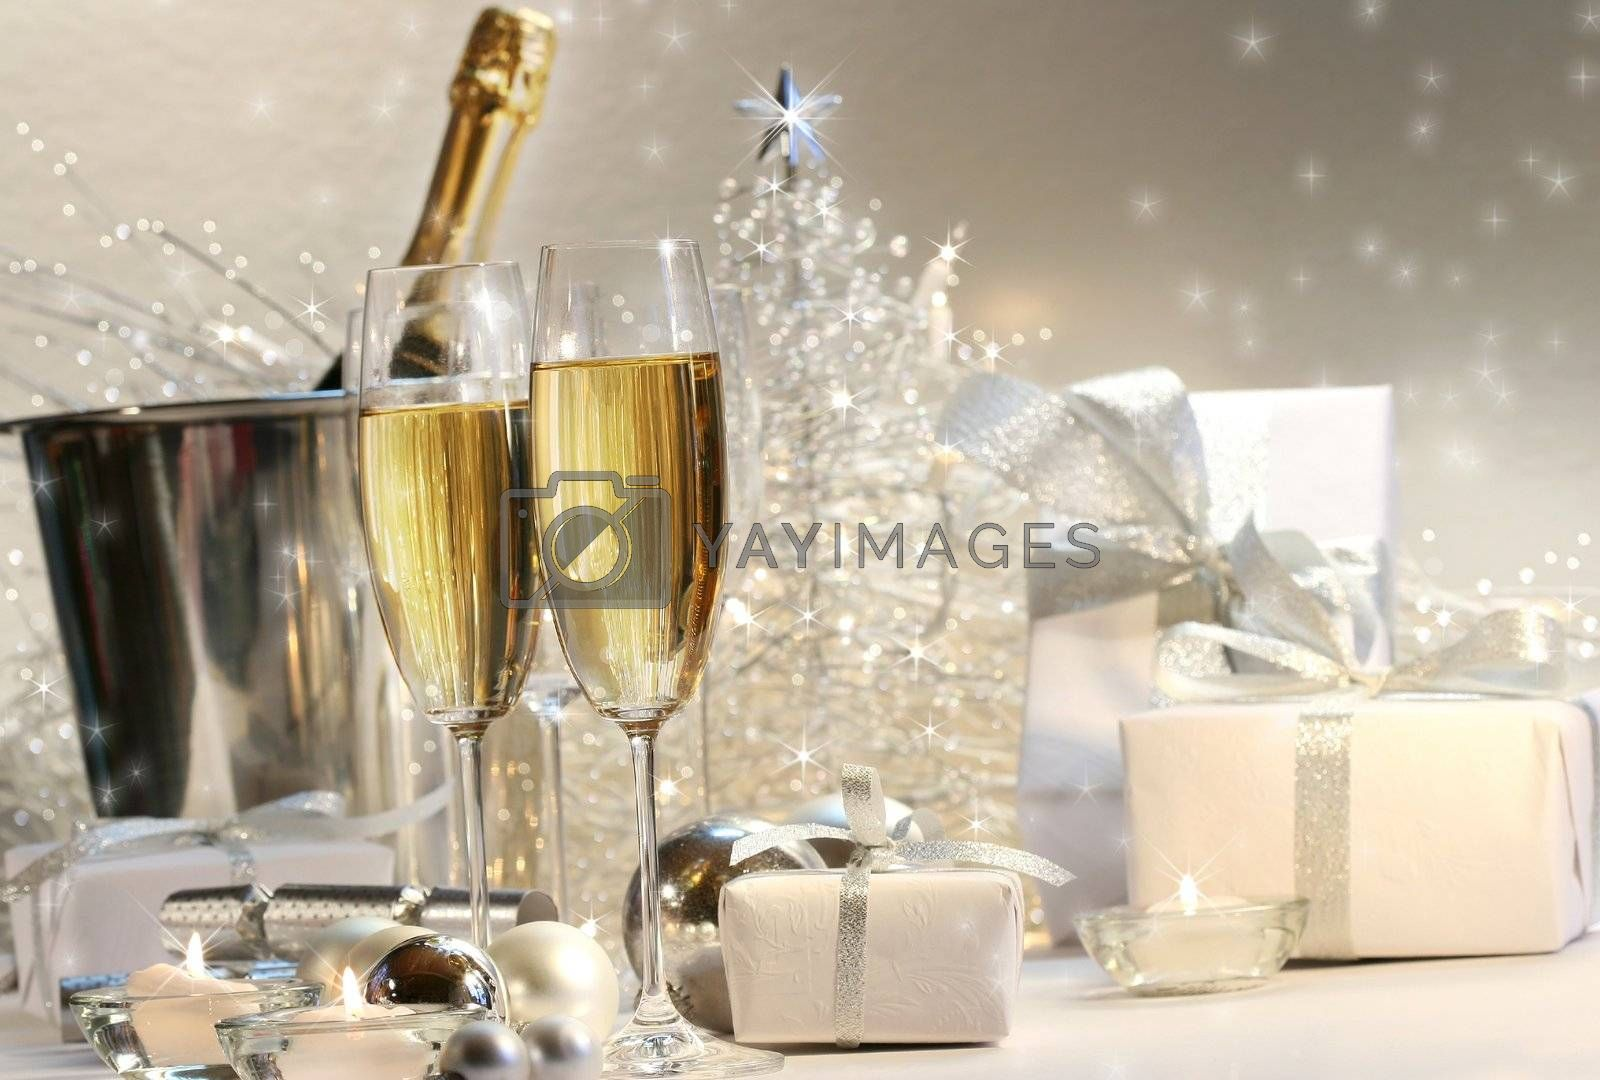 Champagne glasses by Sandralise